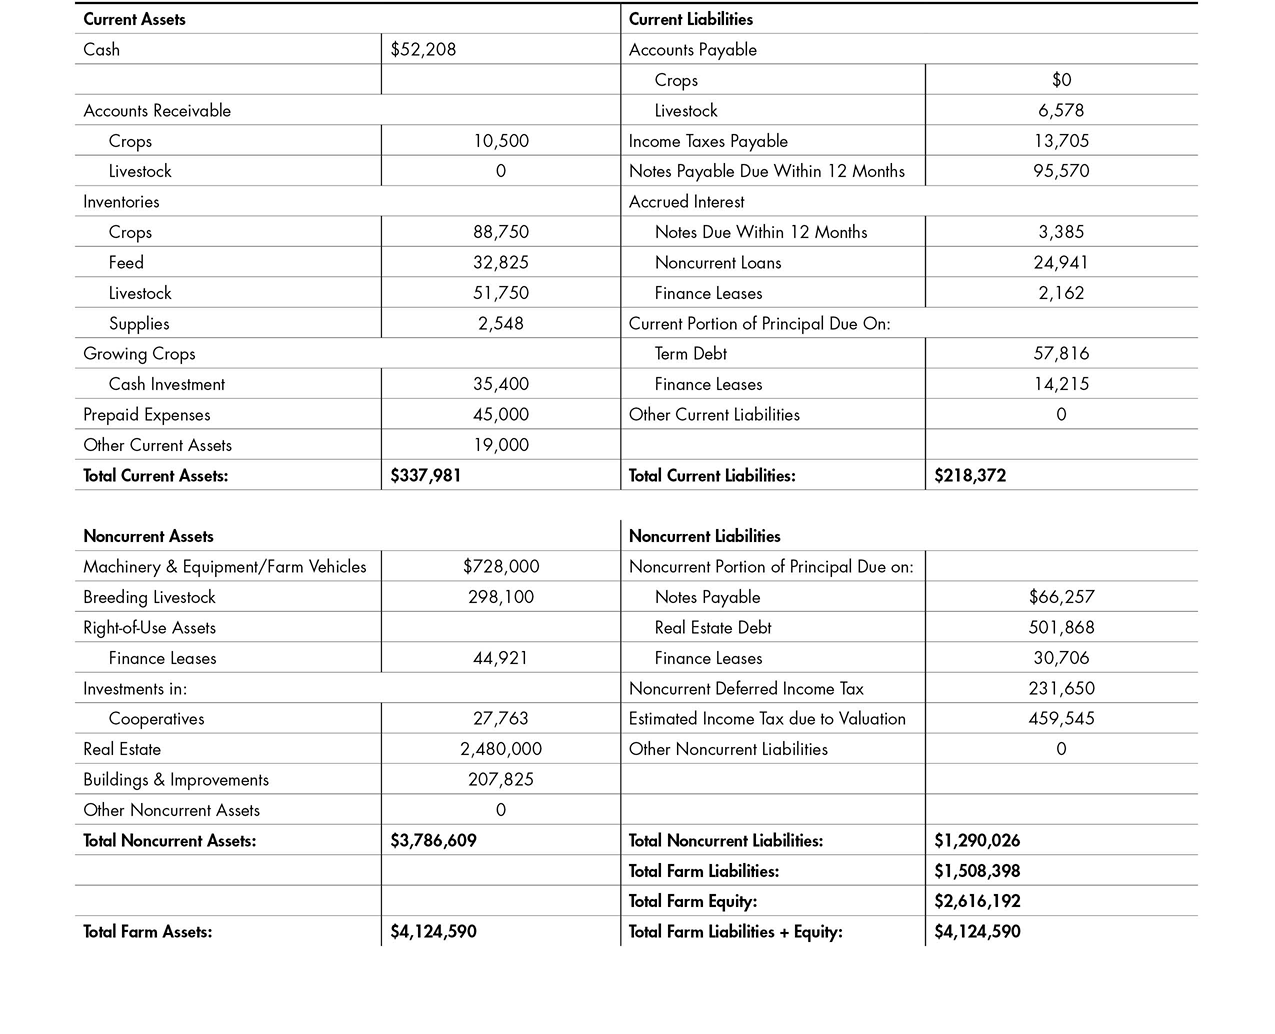 This balance sheet example outlines sample assets and liabilities to calculate the total liabilities and equity for a farm.